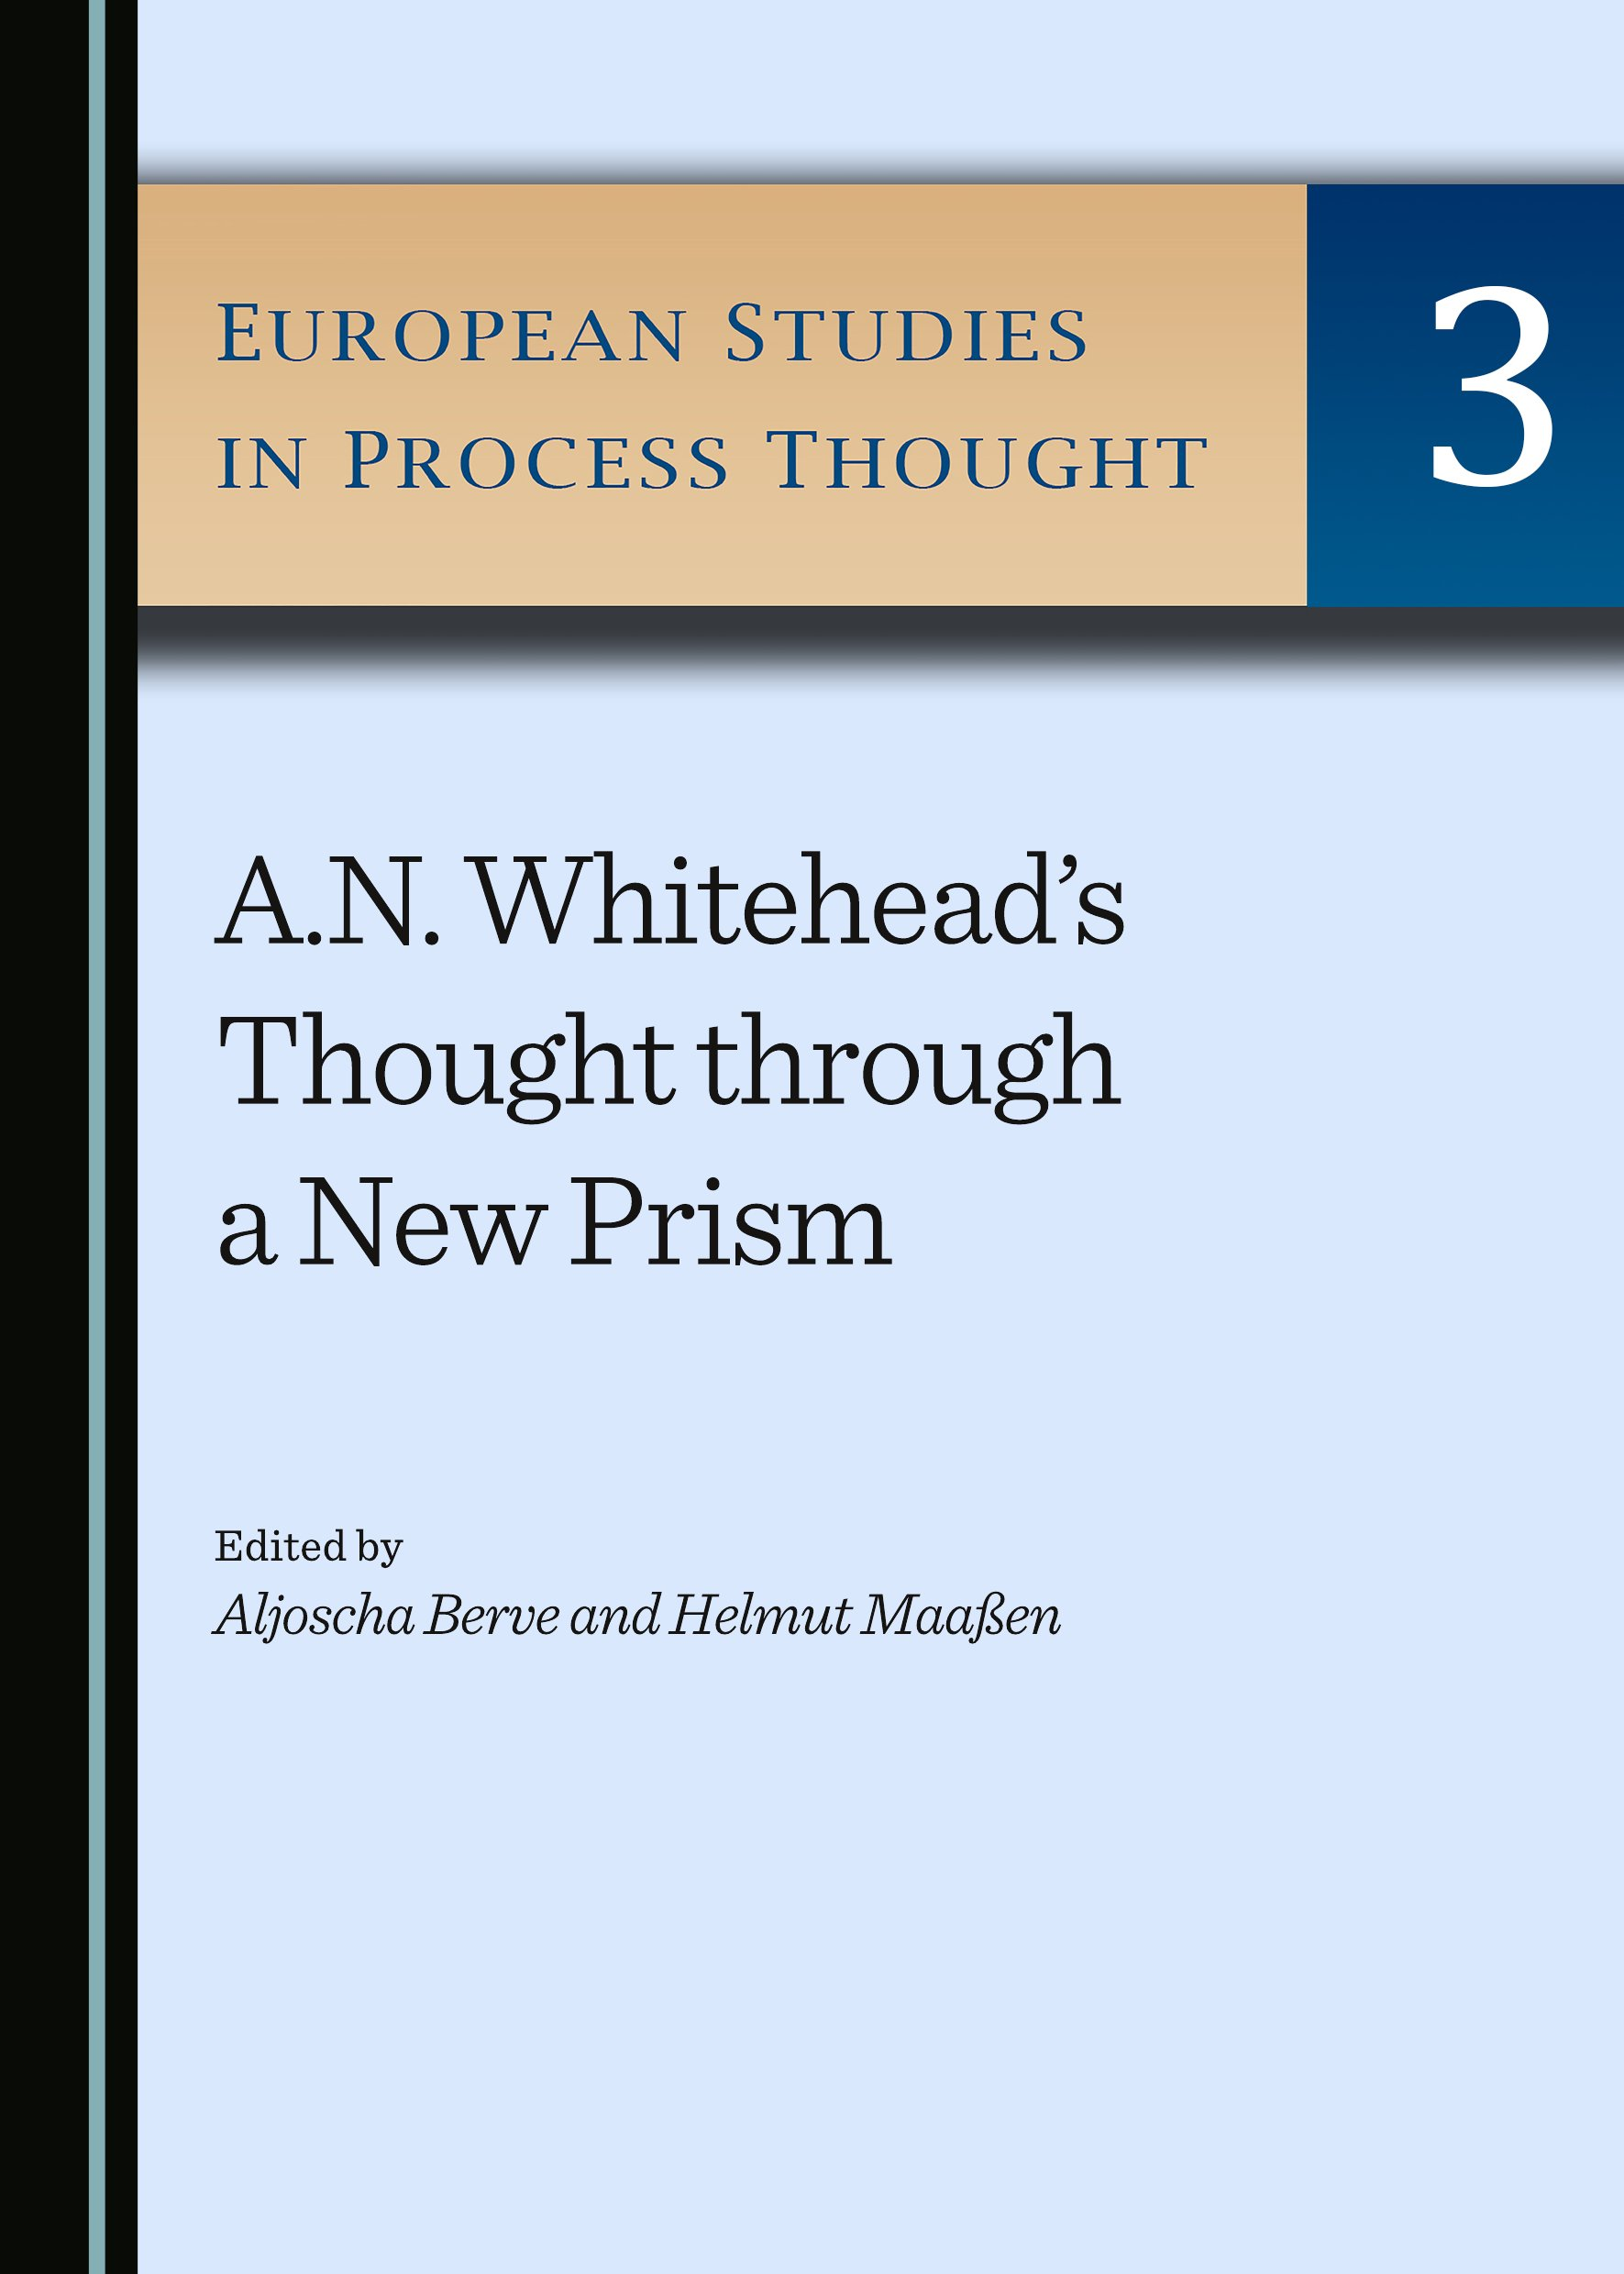 A.N. Whitehead's Thought through a New Prism